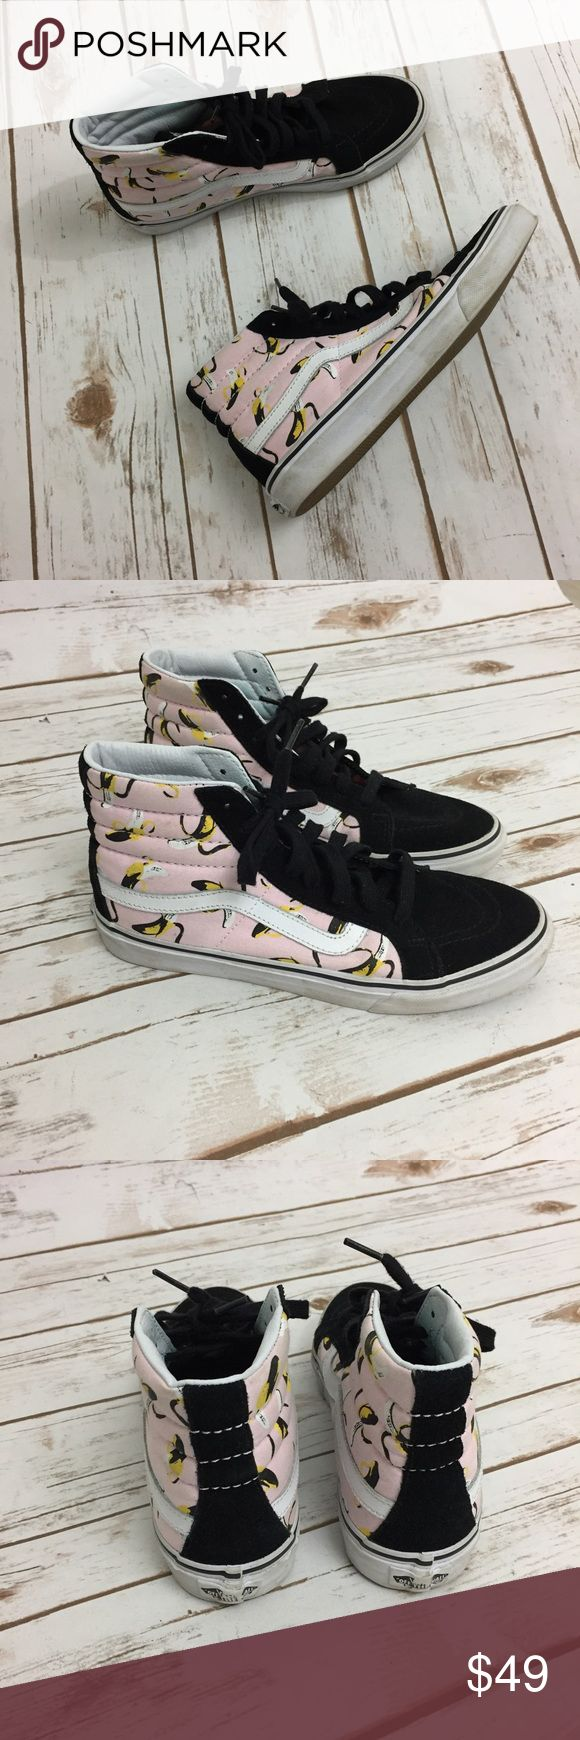 """Vans Sk8 Hi Slim Suede Canvas Banana Sneakers Vans. Size 8. """"Sk8 Hi Slim Banana"""". Ballerina/ True white classic. Canvas and Suede. Rubber sole. Lace up closure. Excellent Preowned Condition. Vans Shoes Sneakers"""